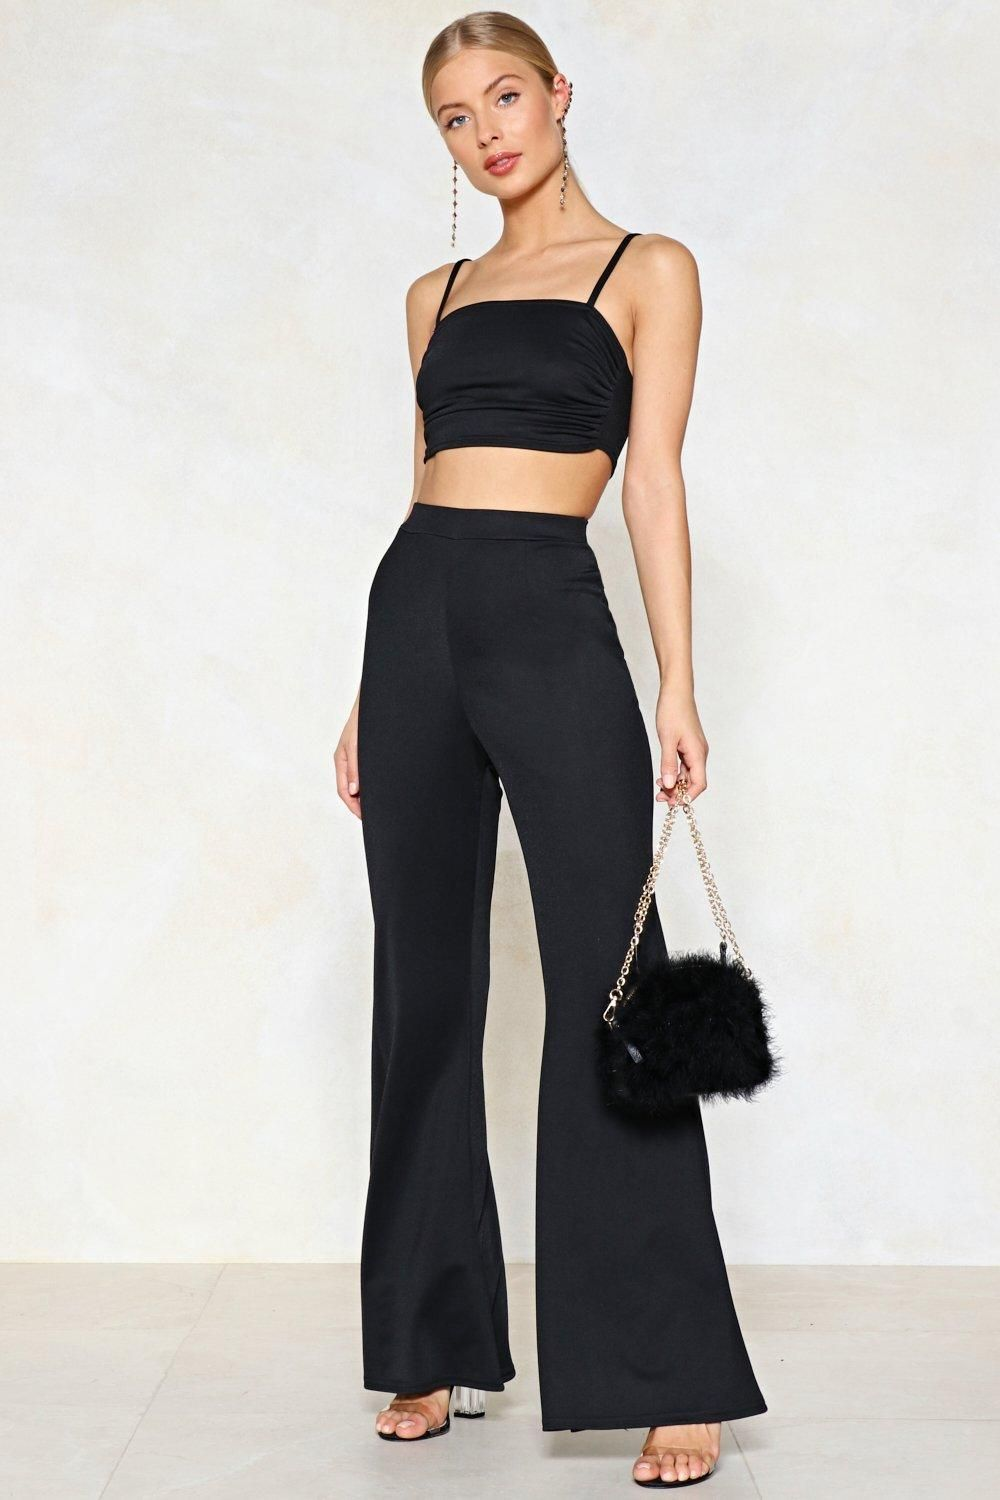 277a29c135ca The Take Two Pieces Top features a cropped silhouette and square neckline.  The matching pants feature a high-waisted